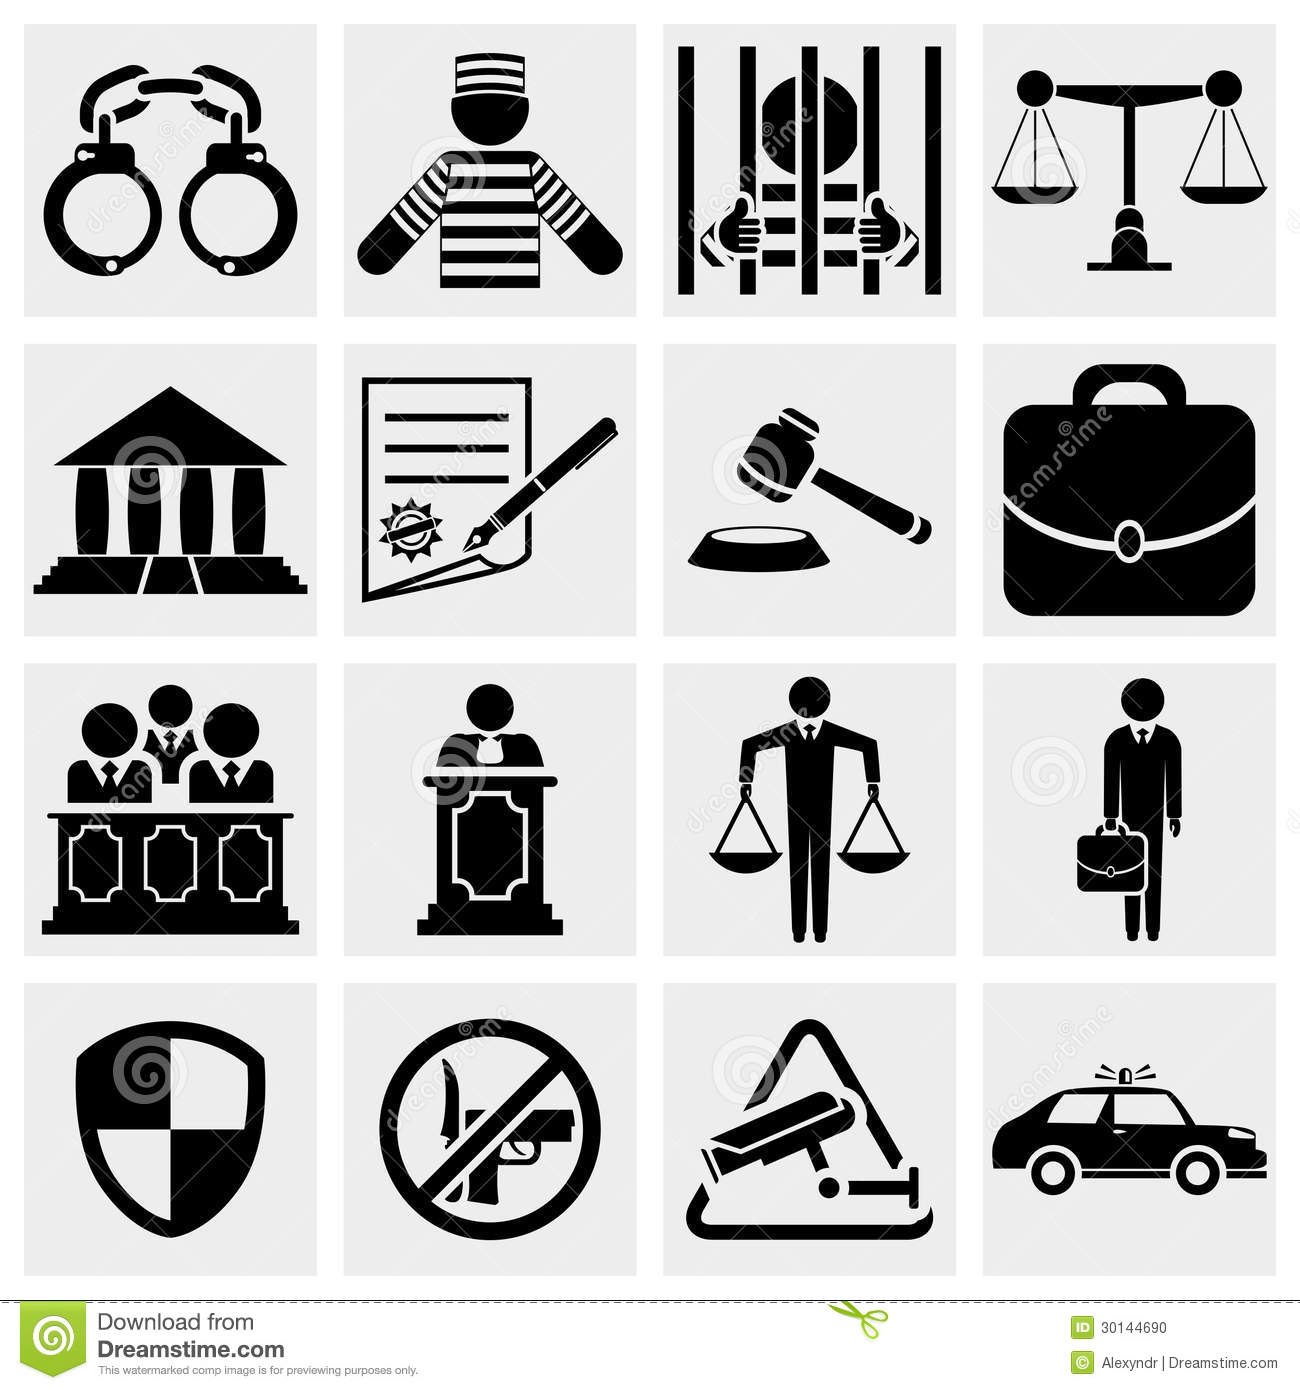 The core elements of justice and law in free societies